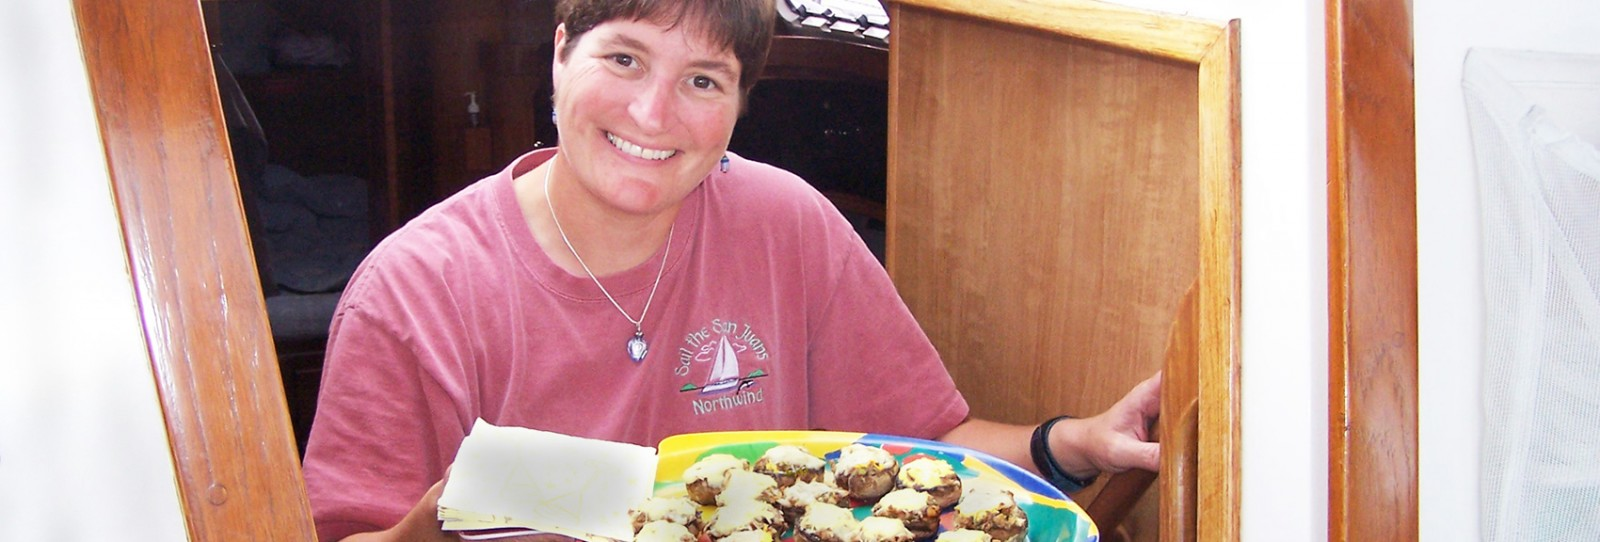 gourmet cuisine from Chef Jette on san juan islands sailing cruises